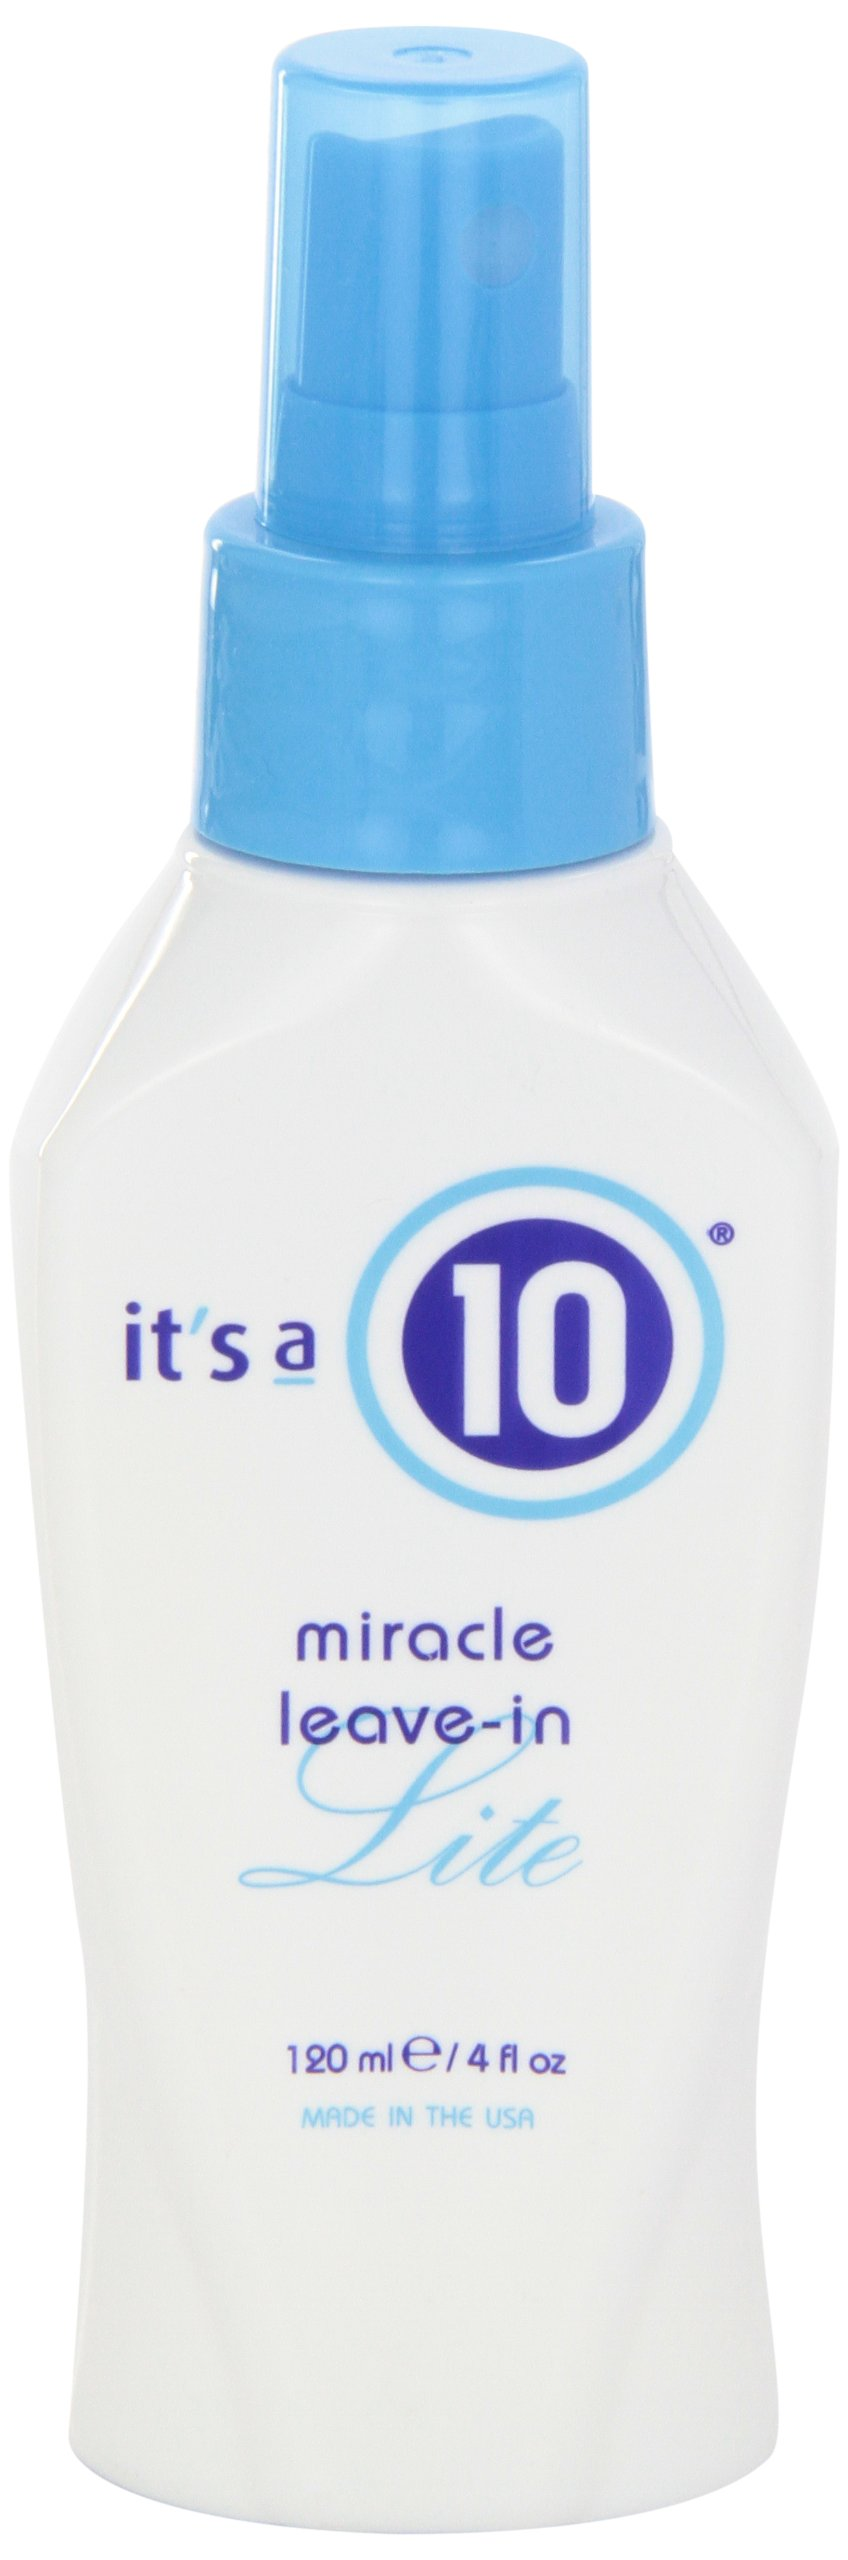 It's a 10 Haircare Miracle Leave-In Lite, 4 fl. oz. by It's a 10 Haircare (Image #4)